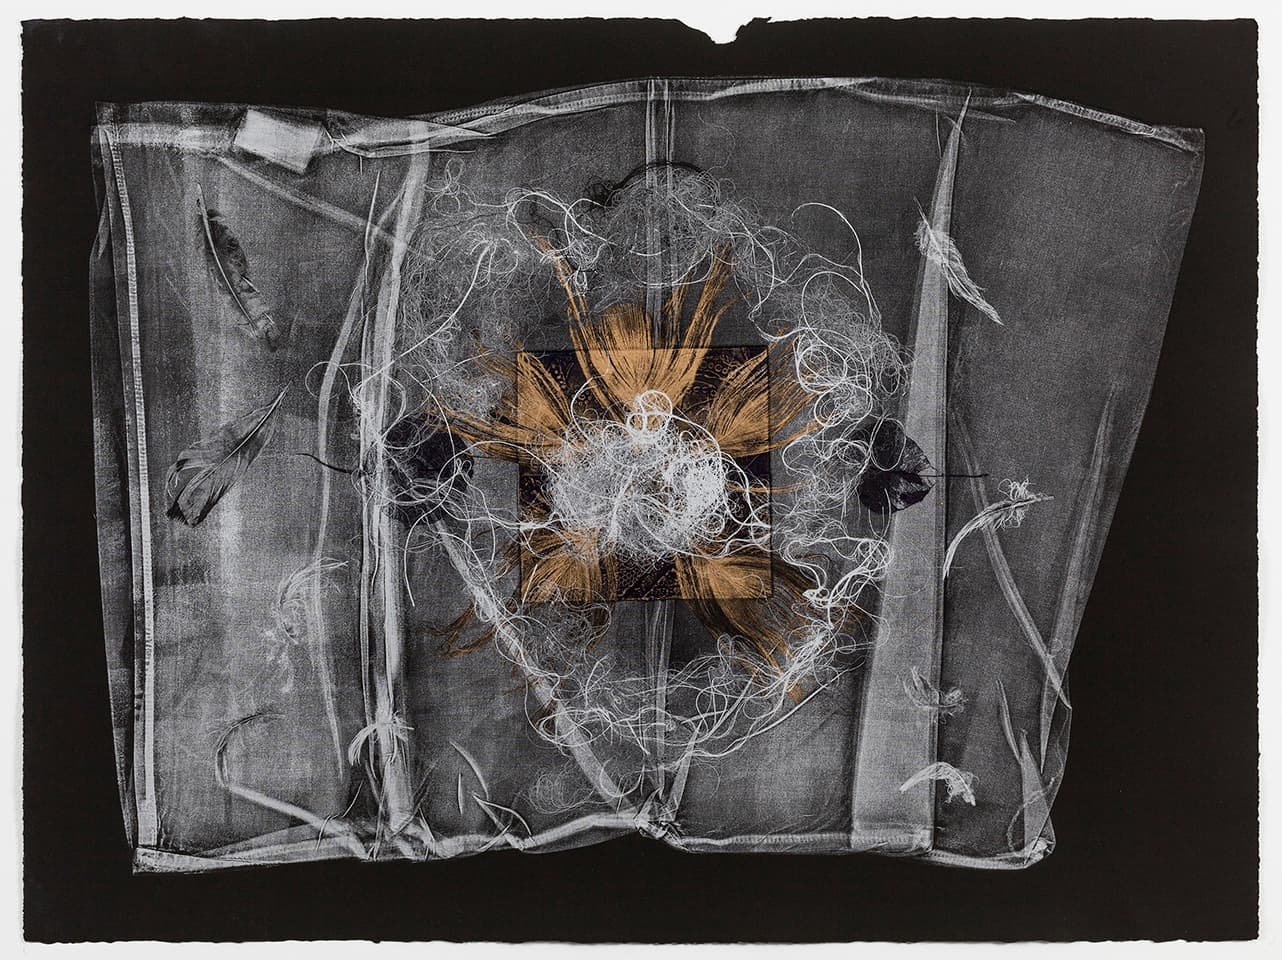 <strong>The Dark Self 3</strong>, Susan Aldworth, monoprint, 56 x 76 cms, 2017. Photograph by Peter Abrahams.